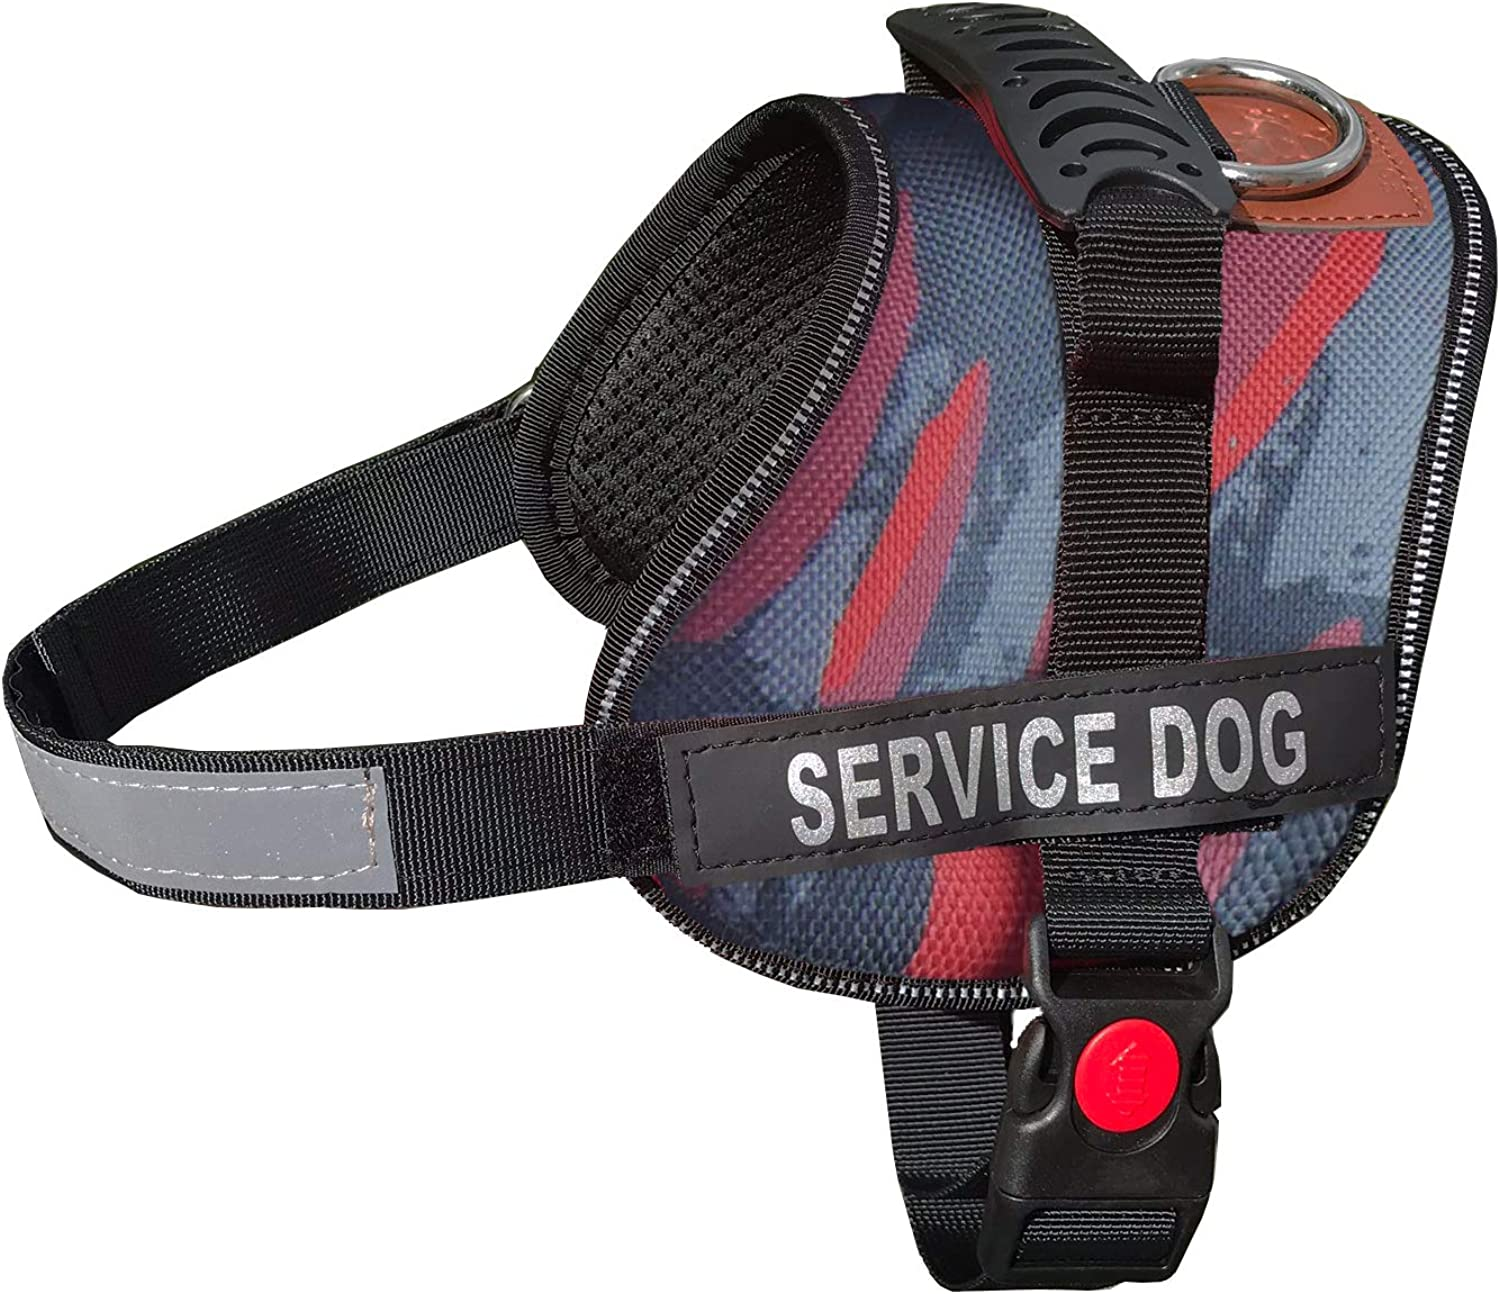 ALBCORP Service Dog Vest Harness  Reflective  Woven Nylon, Adjustable Service Animal Jacket, with 2 Hook and Loop Removable Patches, Small, Red Camo